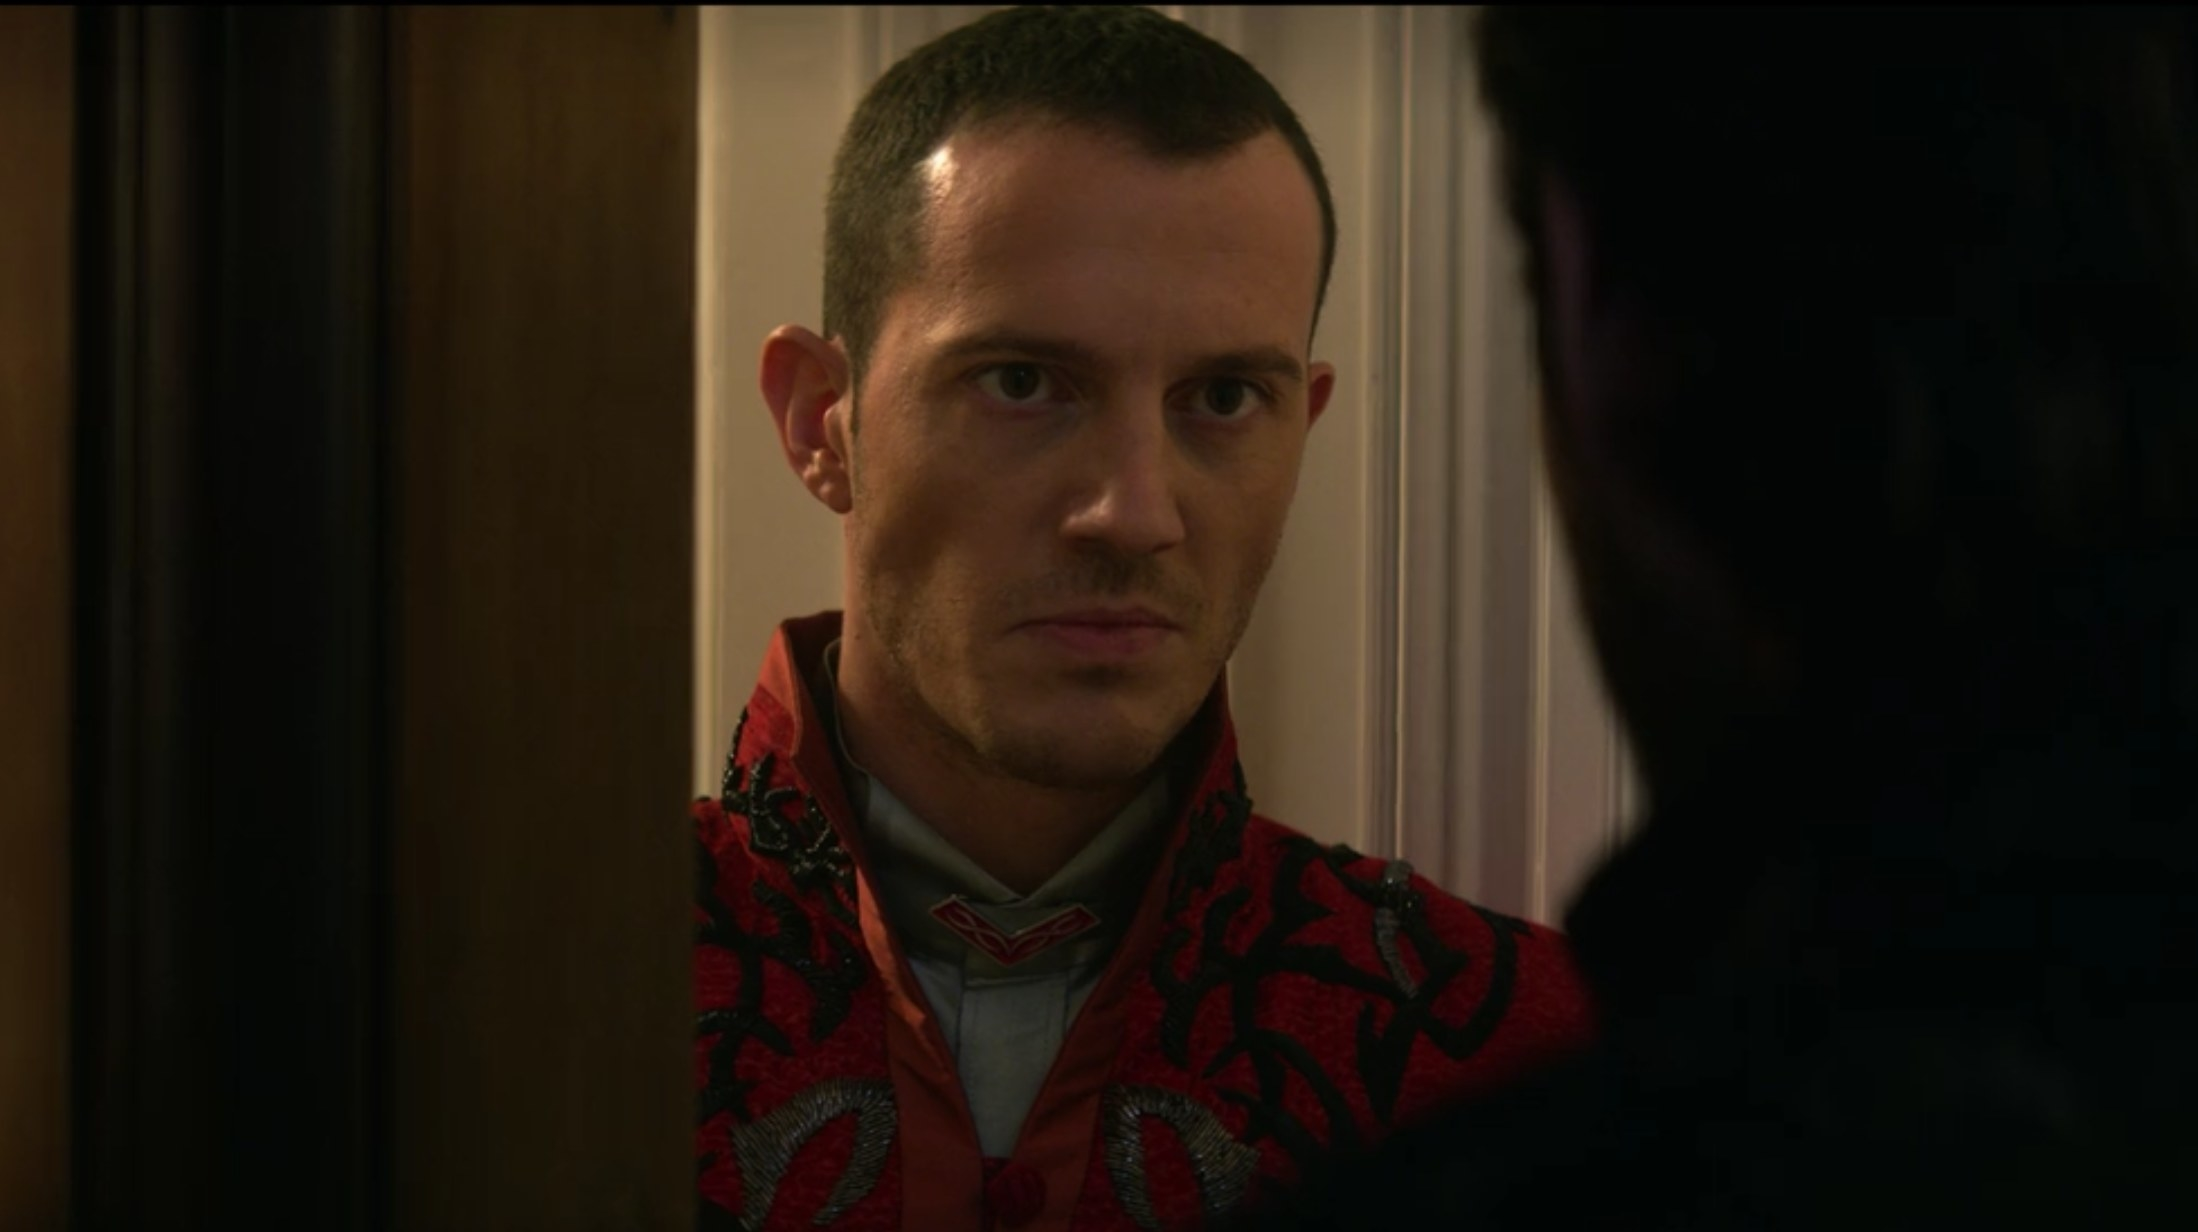 Simon Sears as Ivan standing at the door with bad news.